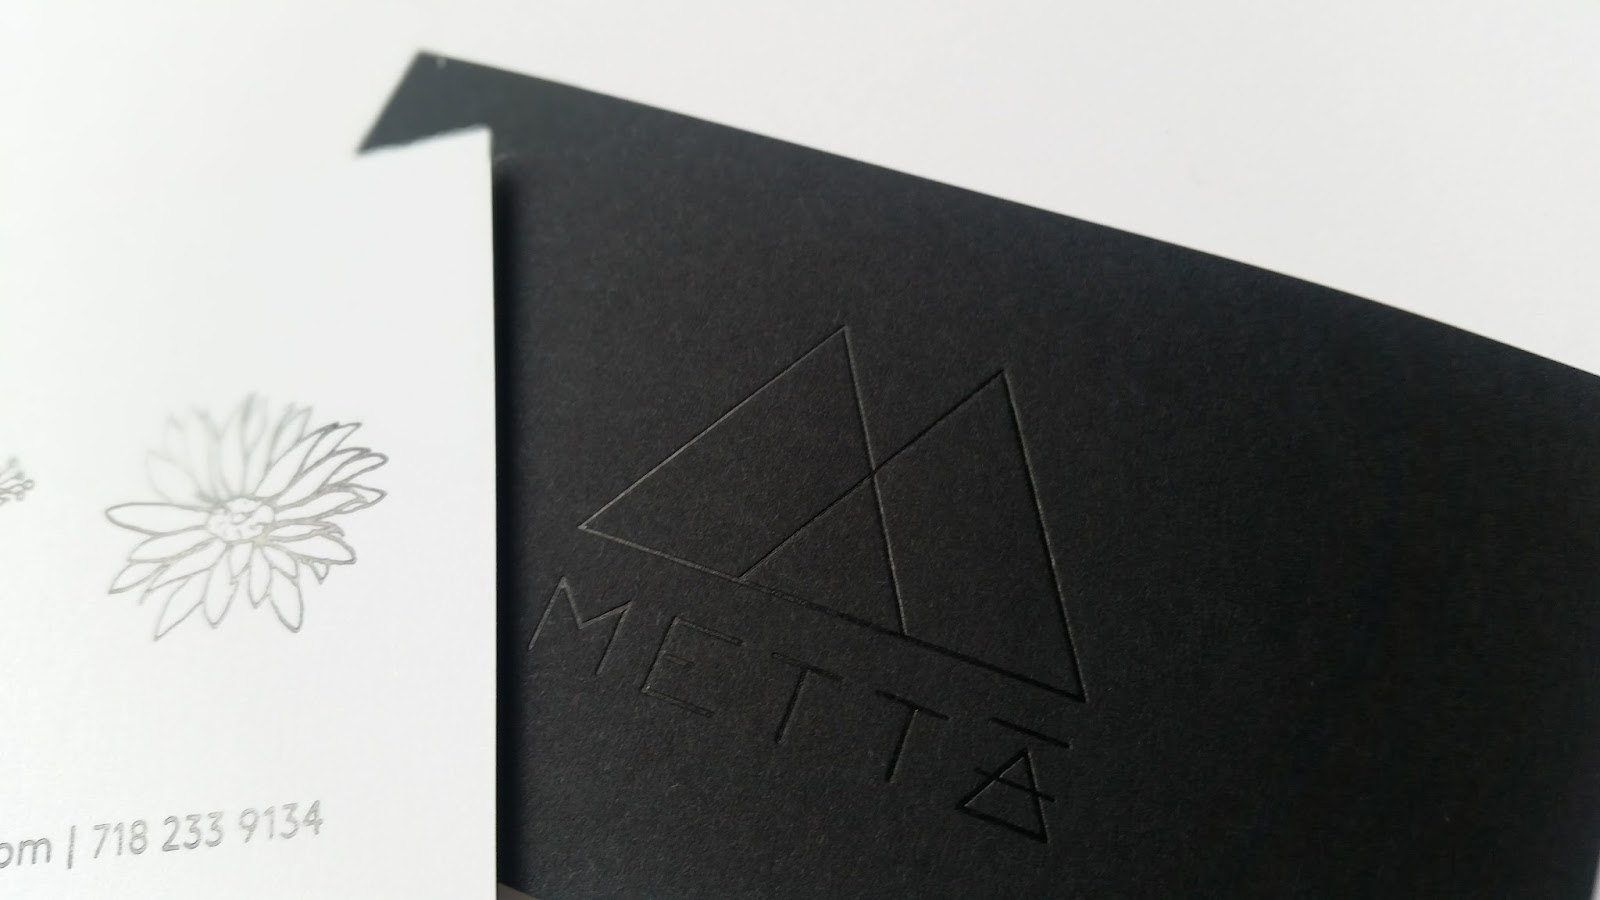 Black Letterpress Business Cards Image collections - Card Design ...